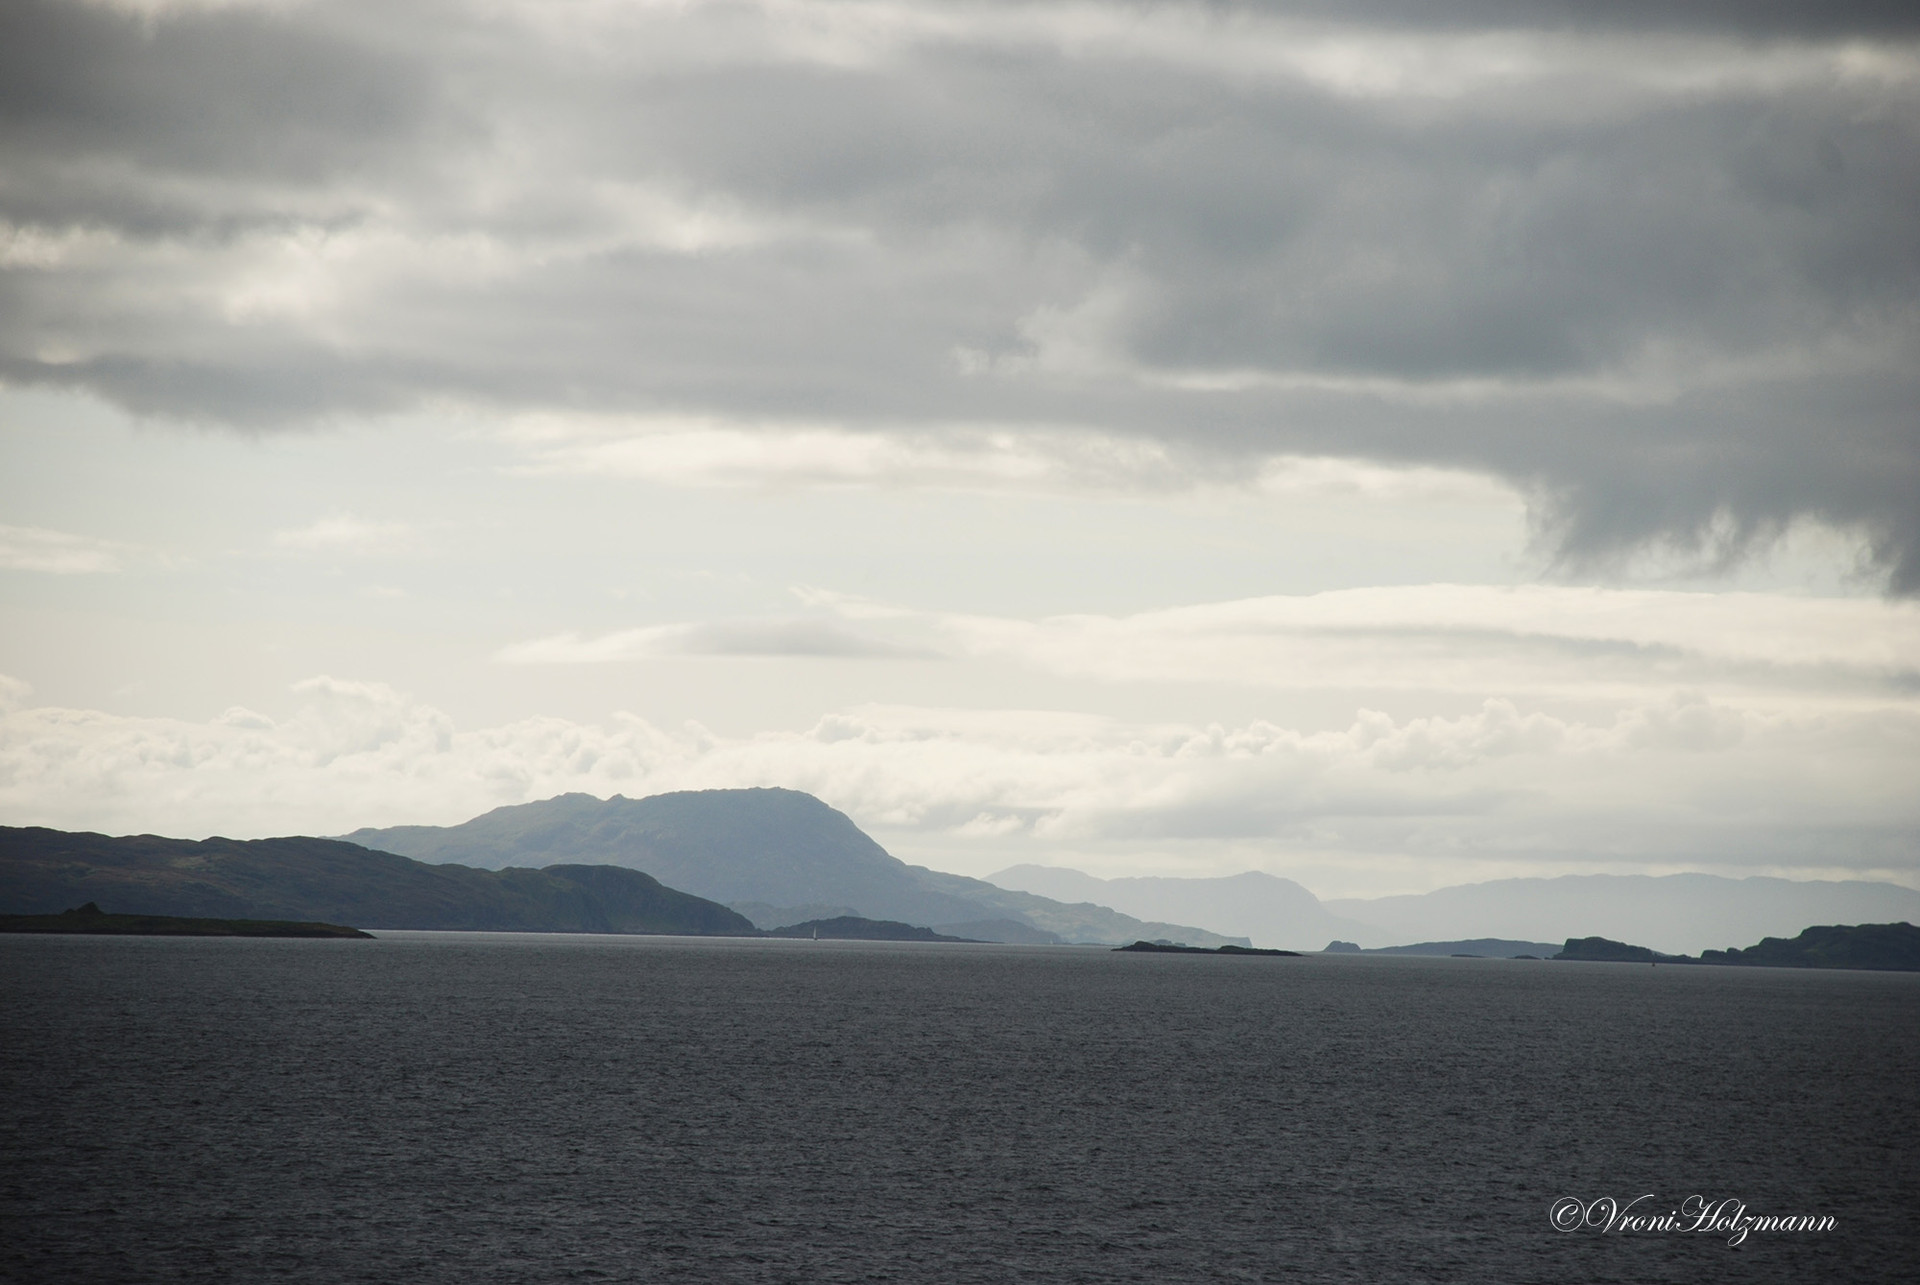 Dark Clouds over the Isles